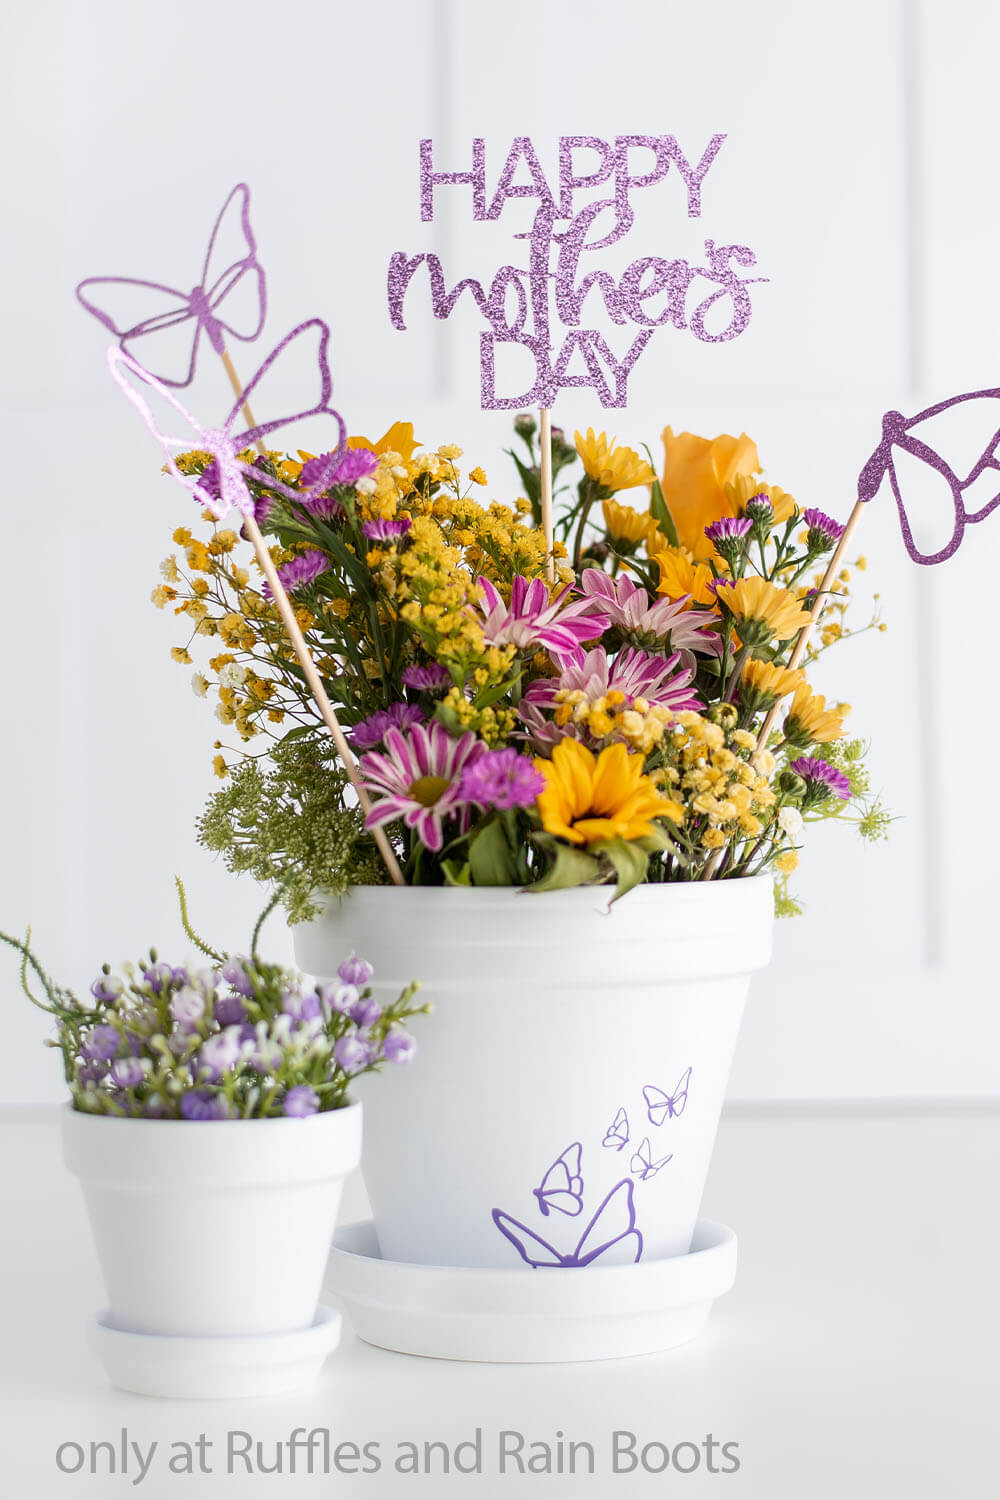 cricut bouquet pick craft for mother's day